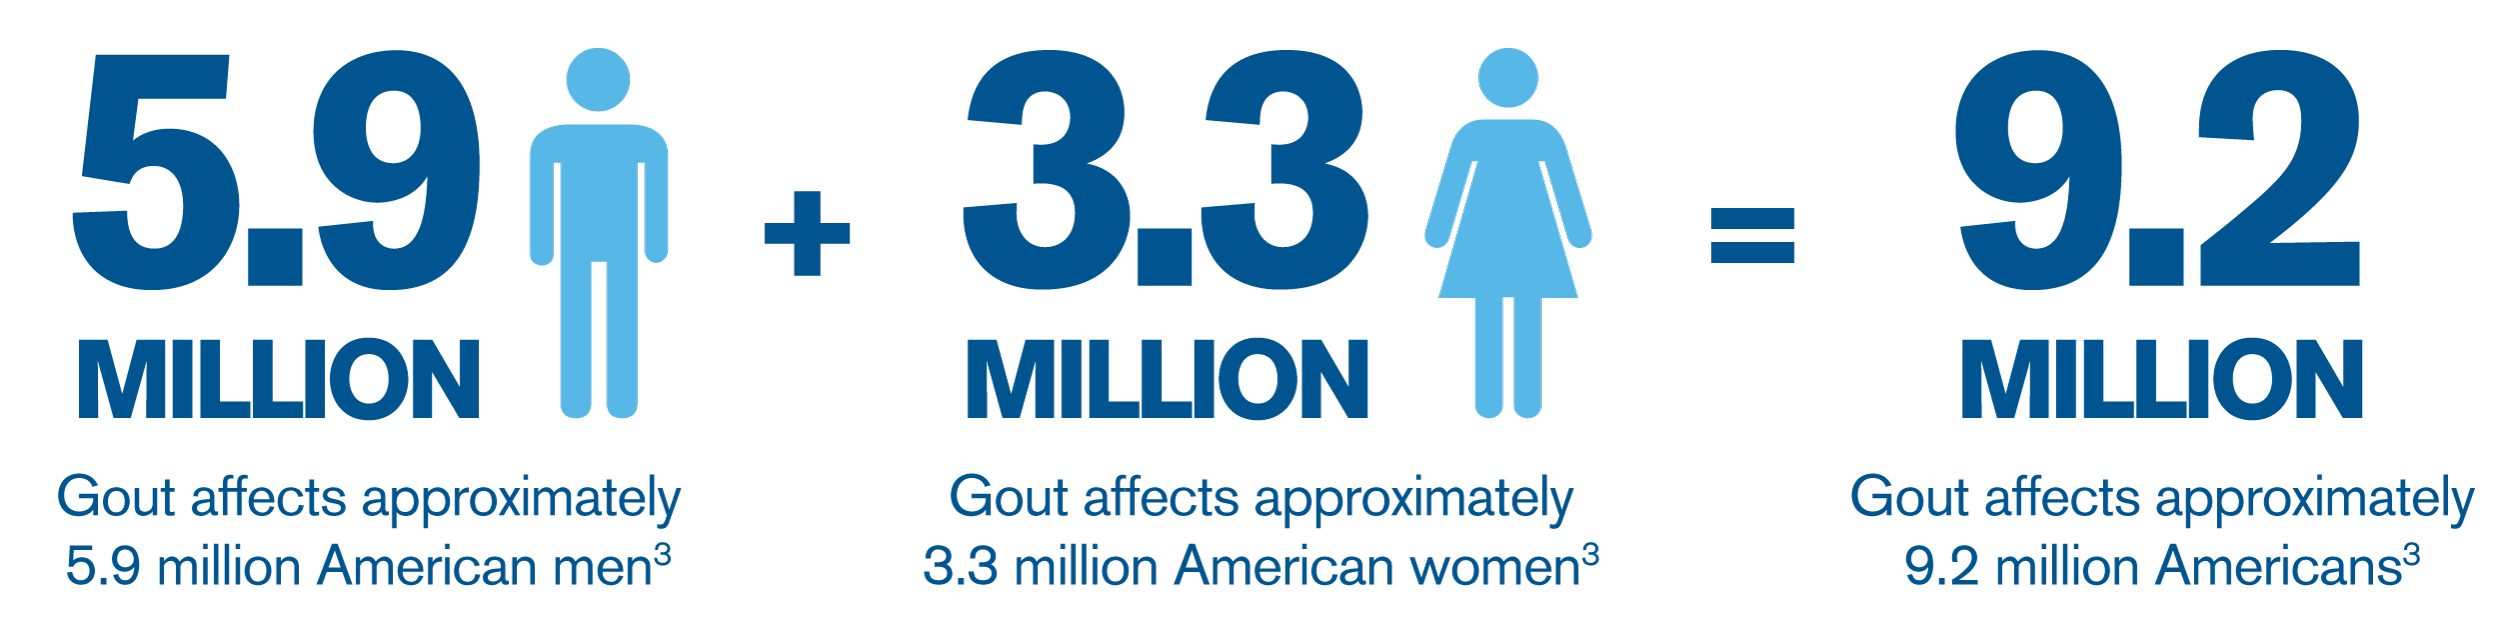 Gout Patient Profiles: Although the majority of people who suffer with gout are men, many women are affected by the disease.